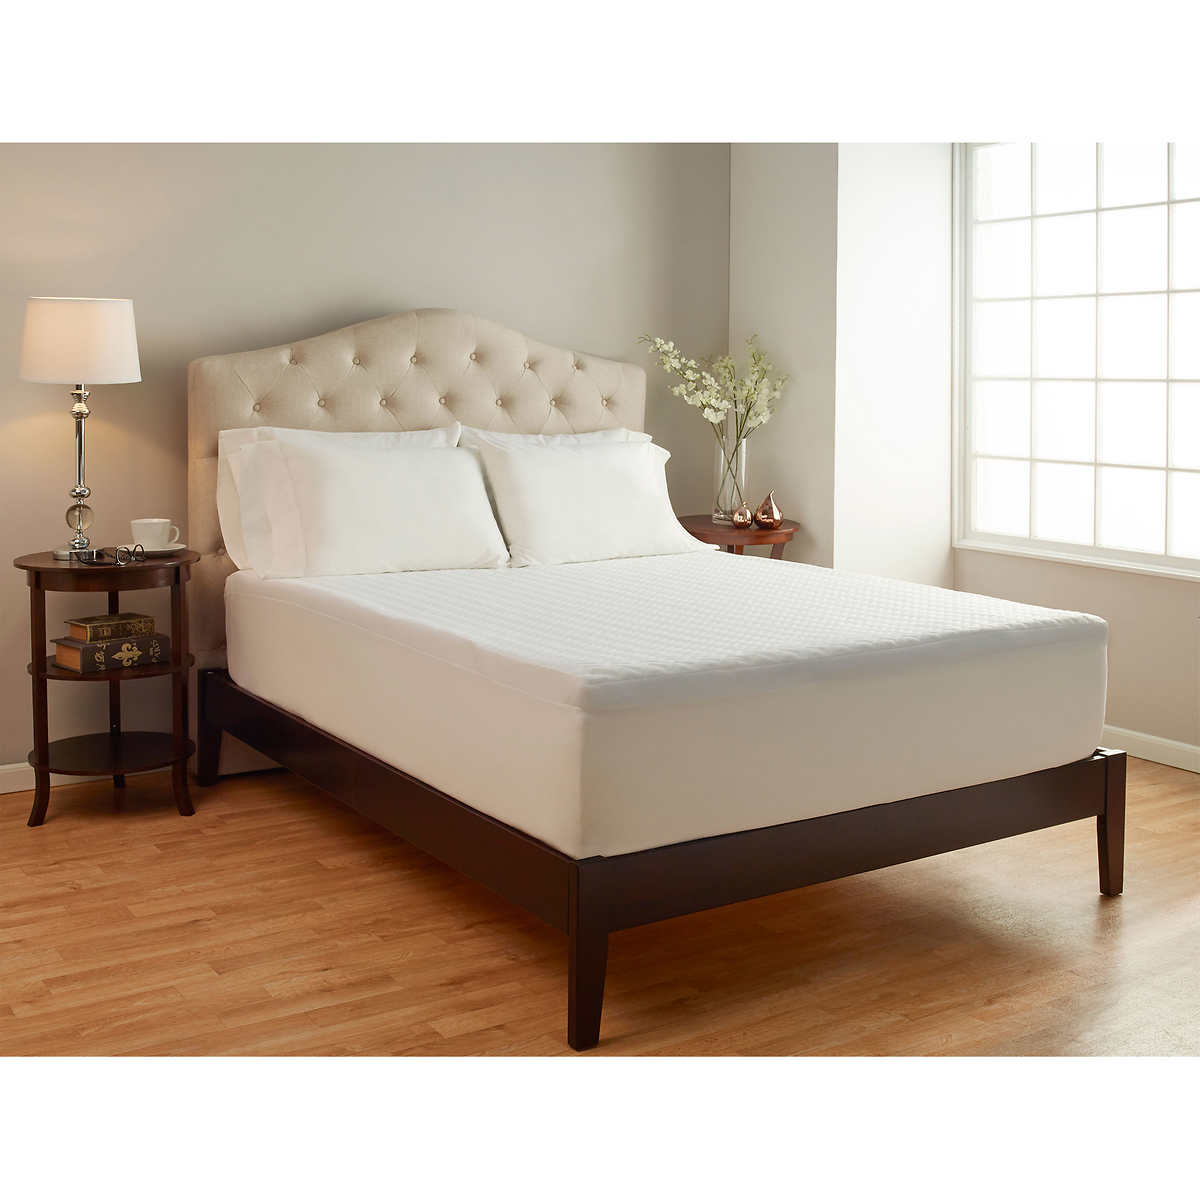 Novaform 3 Seasonal Memory Foam Mattress Topper. (117) · Member Only Item